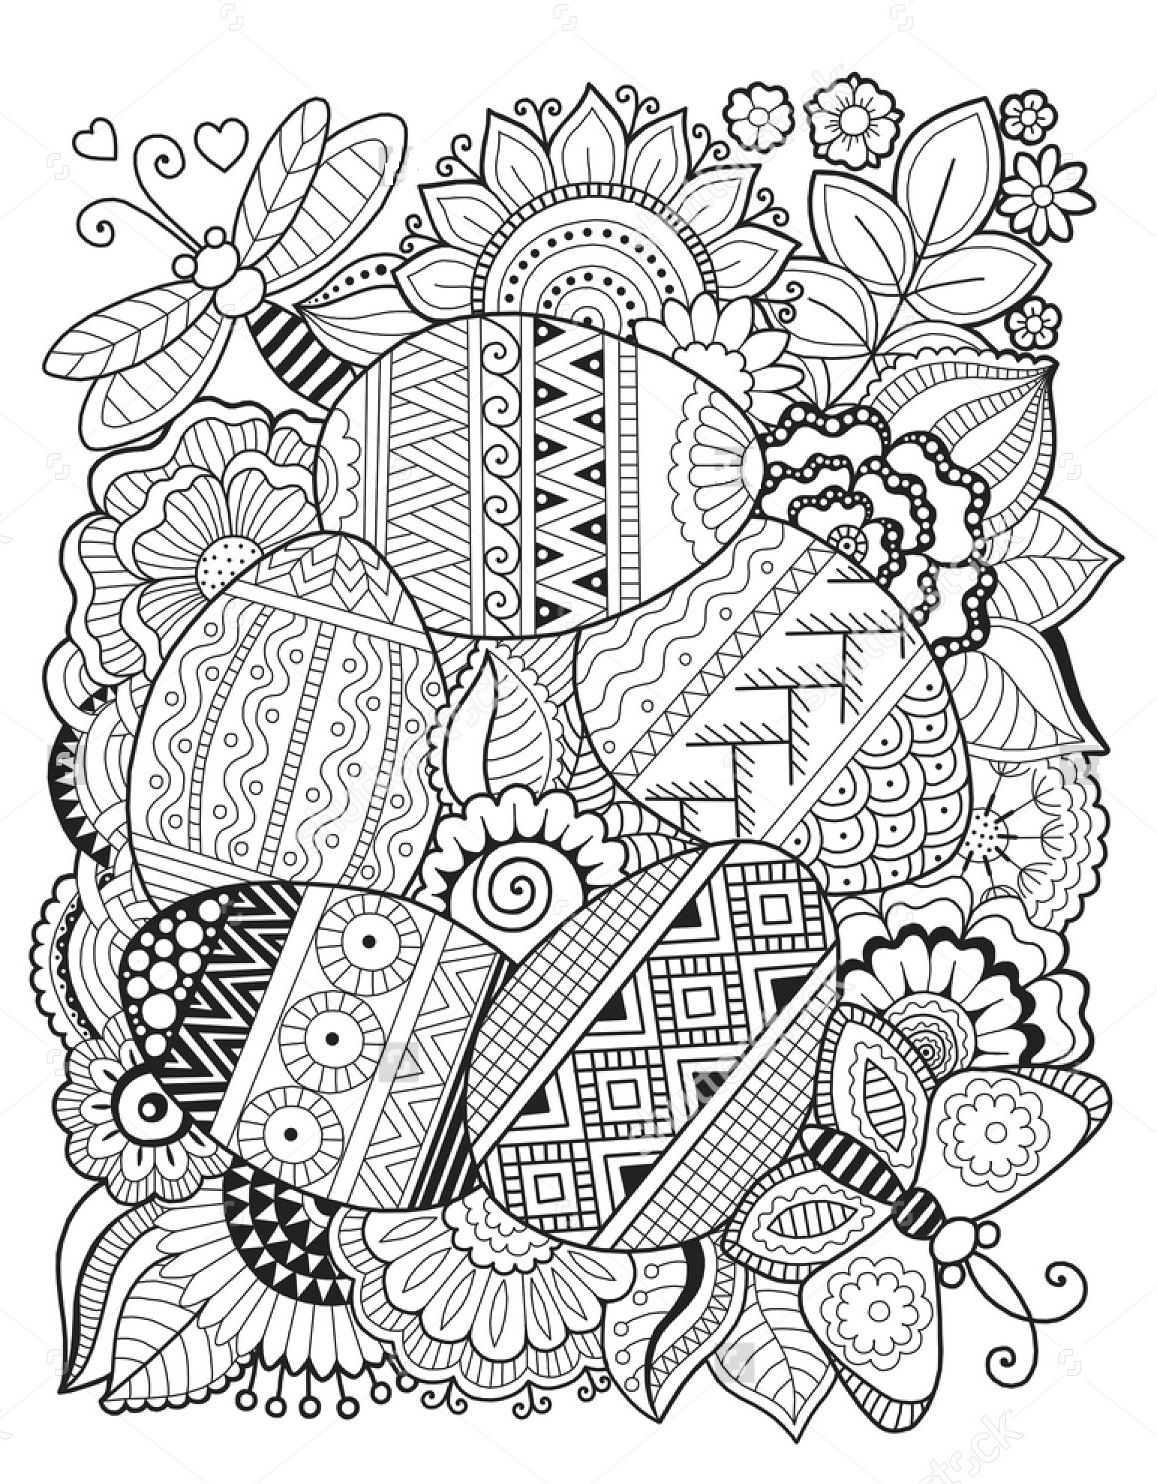 Pin By Fleur Smit On Easter Spring Coloring Pages Easter Coloring Pages Printable Easter Egg Coloring Pages